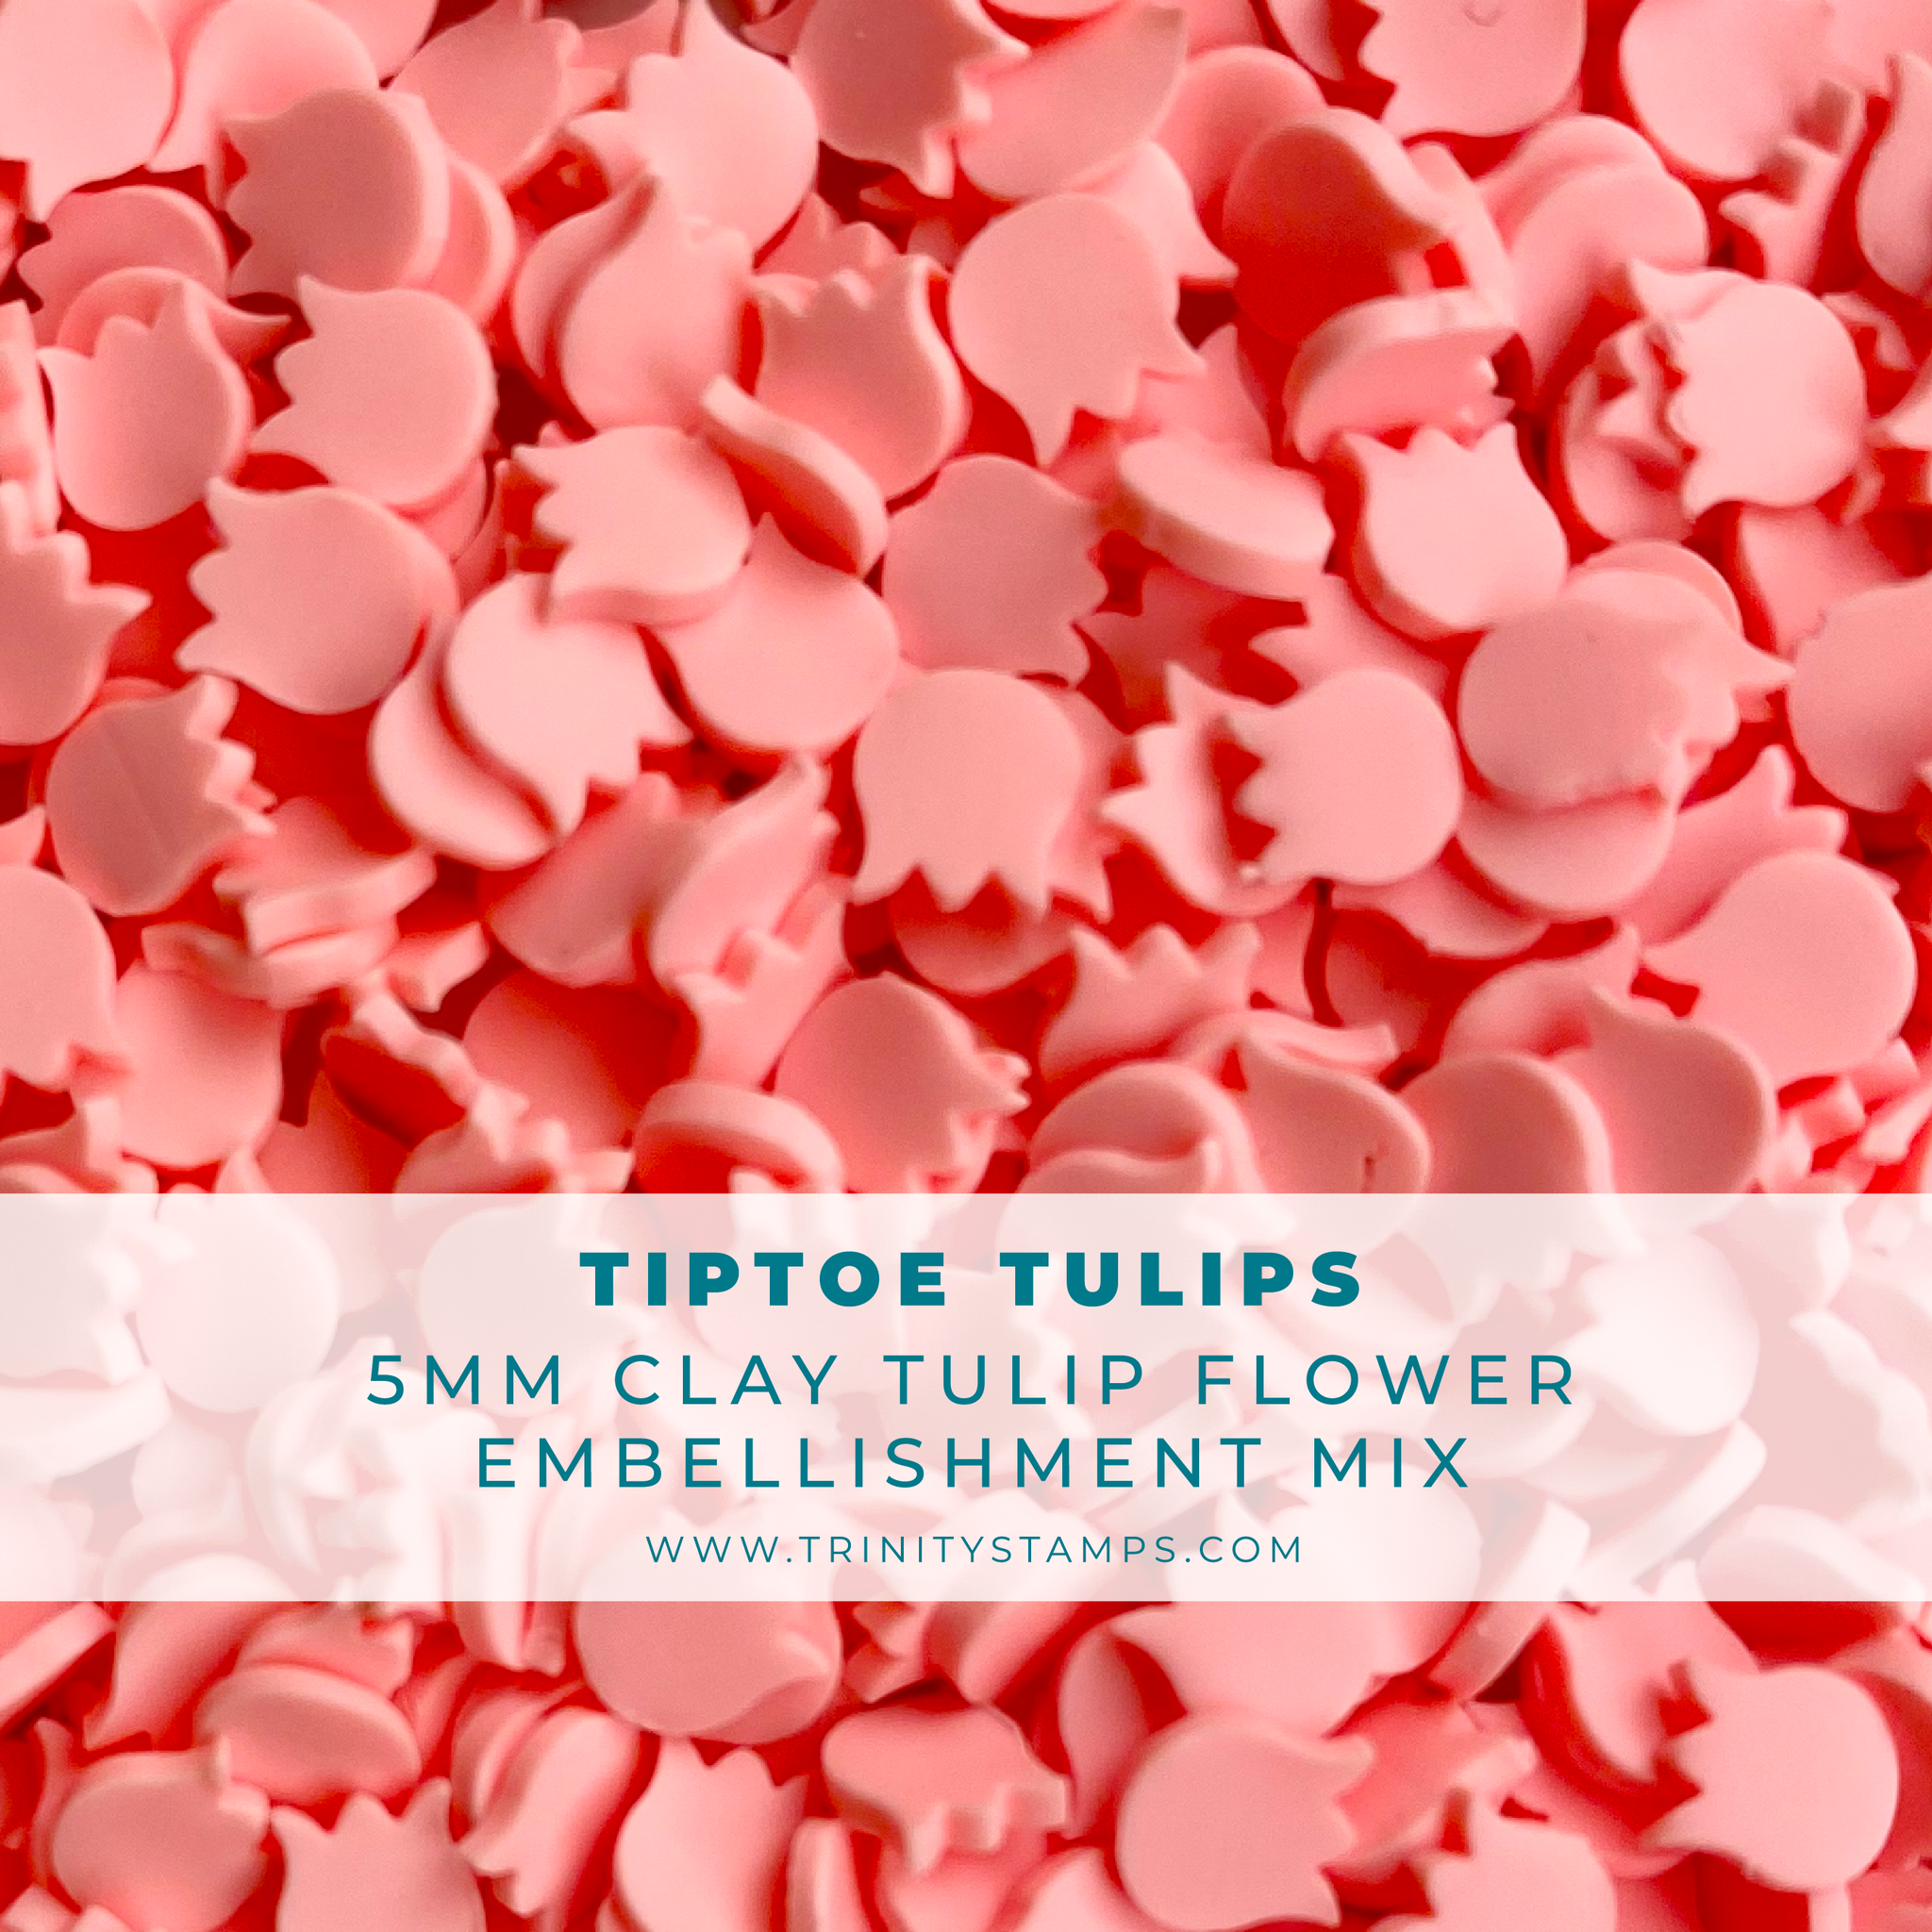 *NEW* - Trinity Stamps - Tiptoe Tulips Embellishment Mix